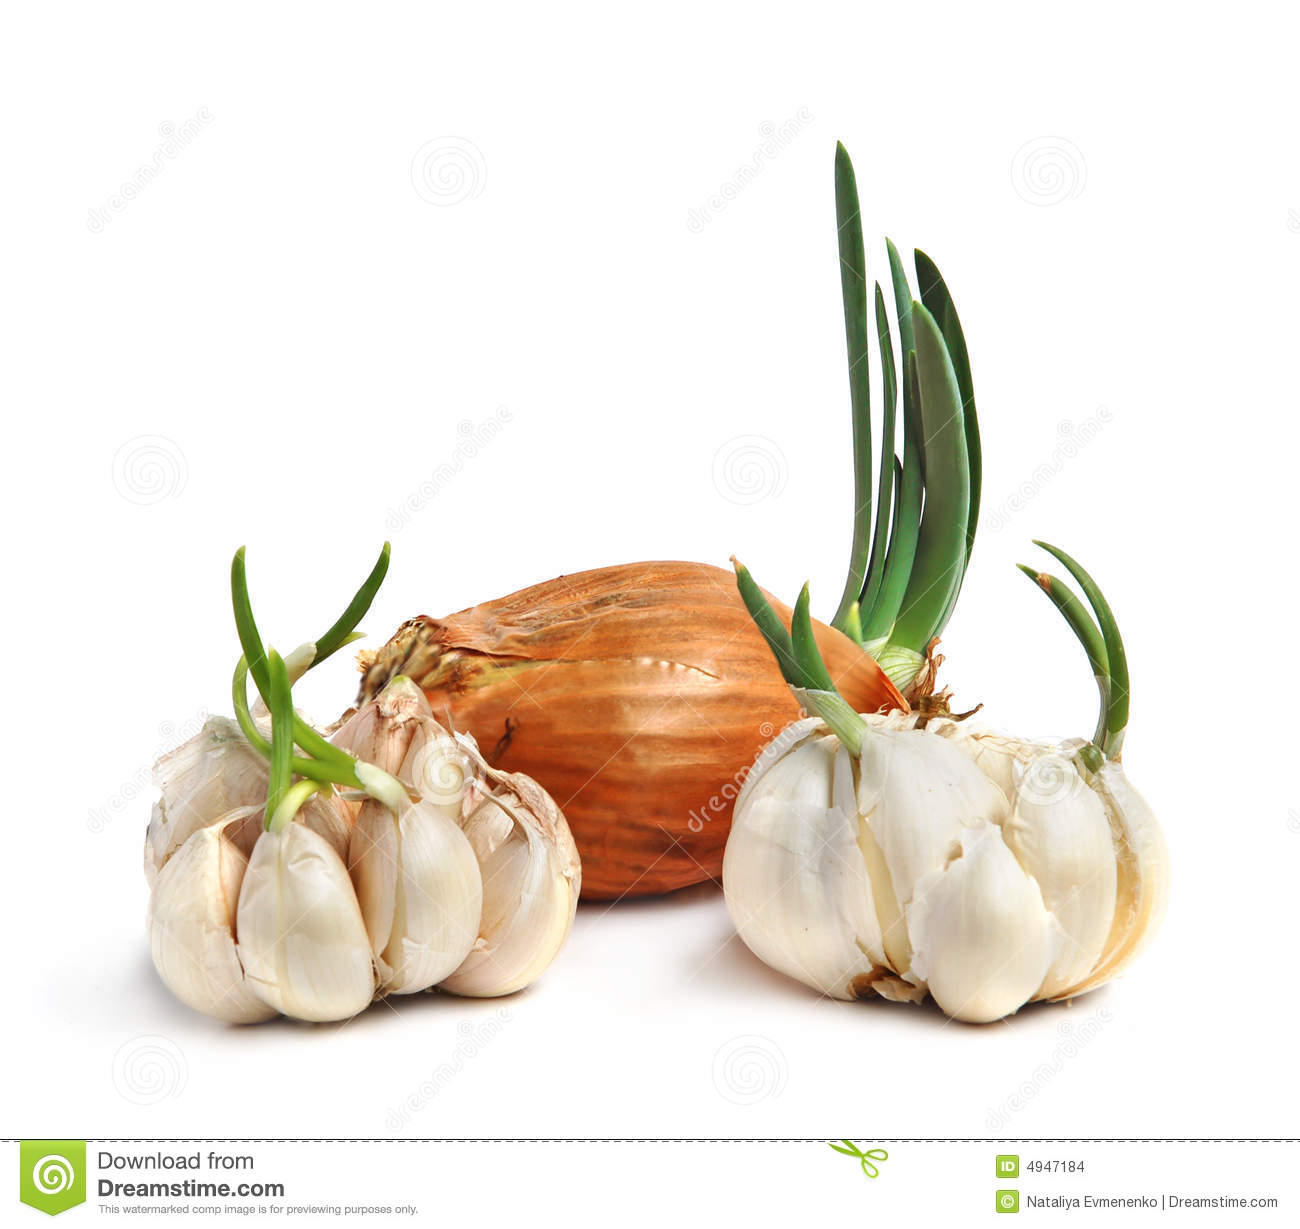 feasibility of cigarette butts and garlic This simple rt-pcr-based experimental method is feasible for rapid  all  saliva dna samples except one (cigarette butt stored for 7 years)  bakri, i m &  douglas, c w inhibitory effect of garlic extract on oral bacteria.